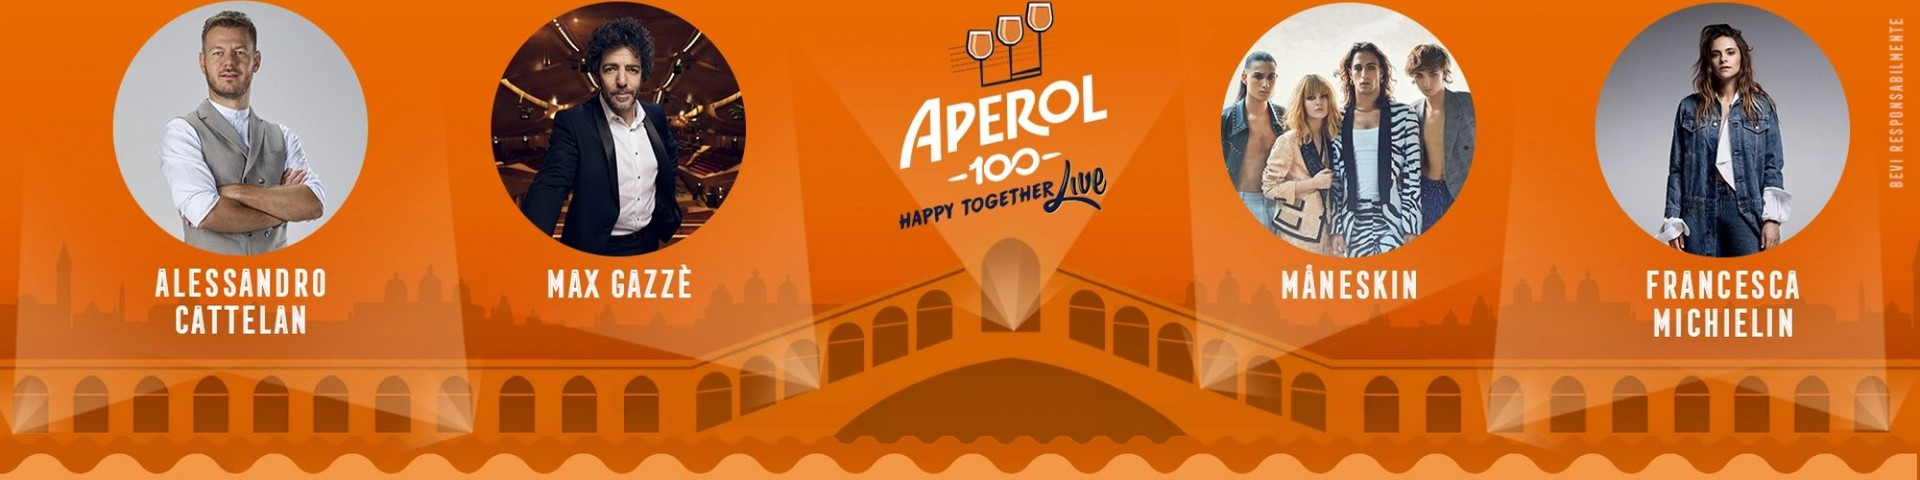 Aperol Happy Together Live 2019 - 29 giugno